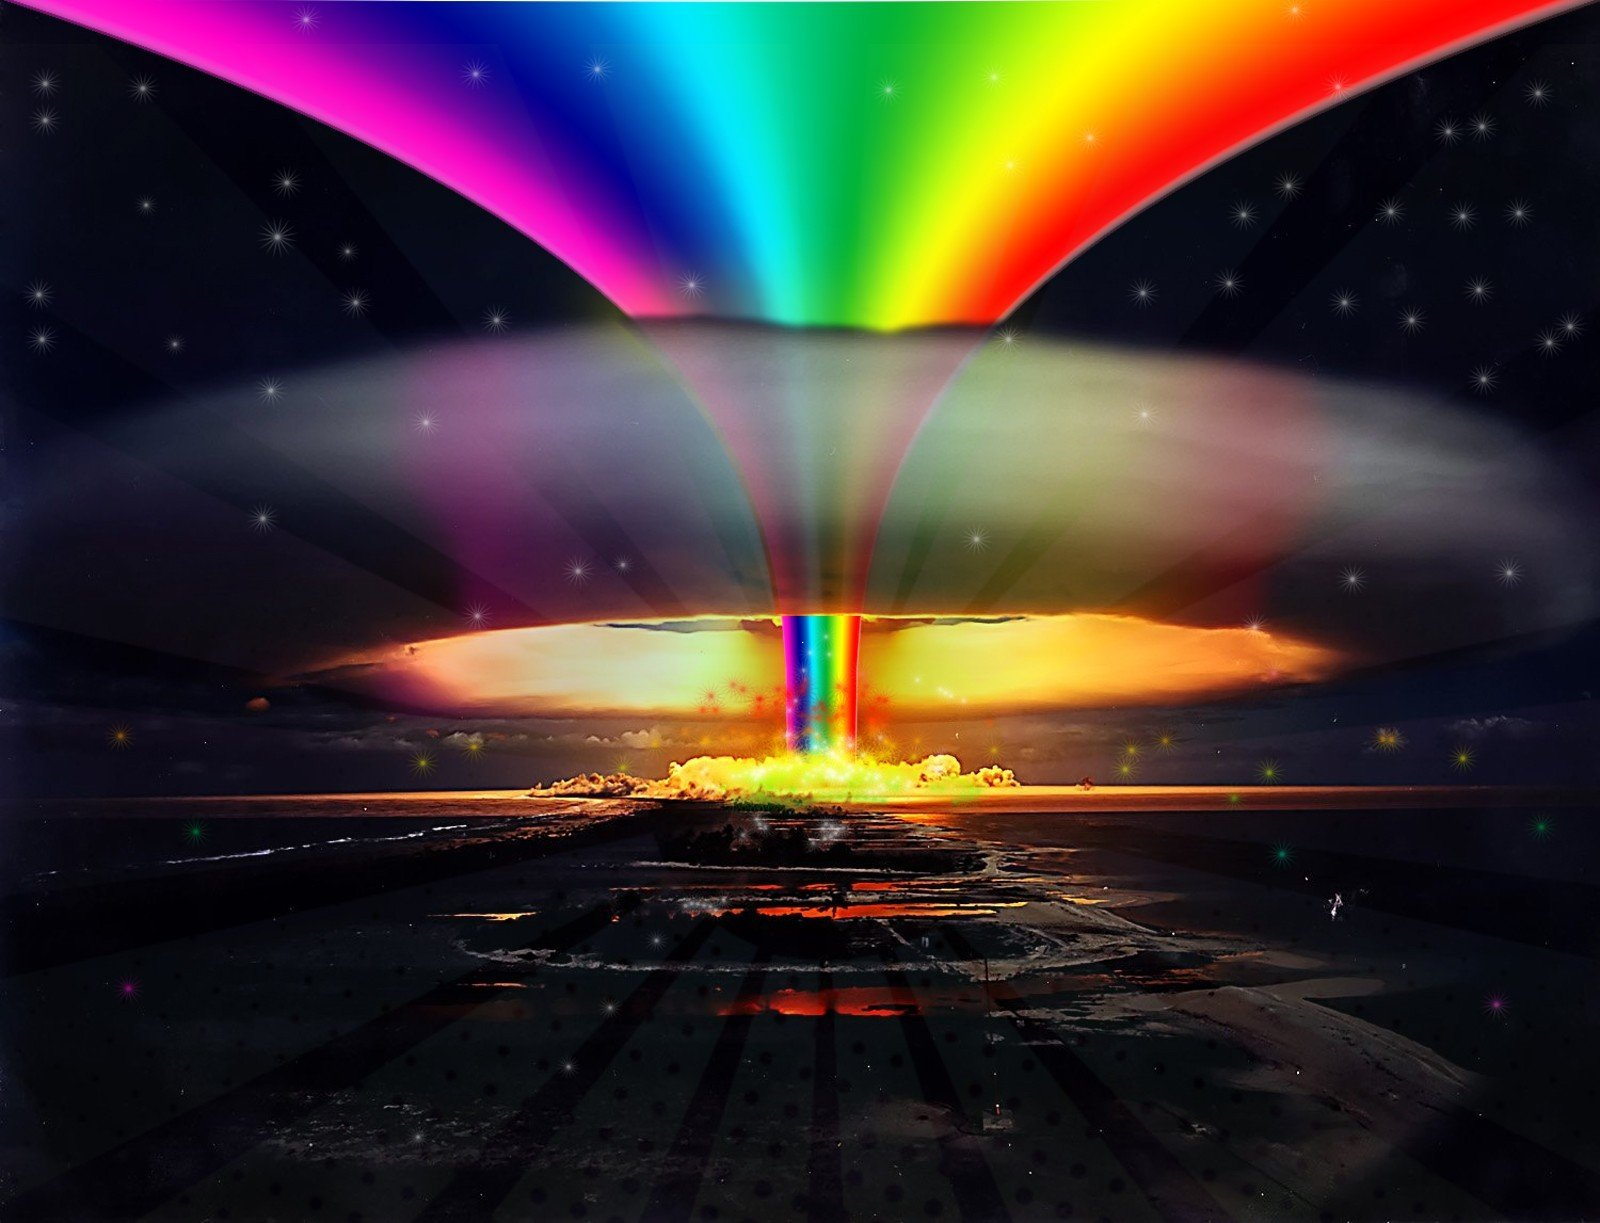 In Tor - Putting paint on a drum kit creates an explosive rainbow